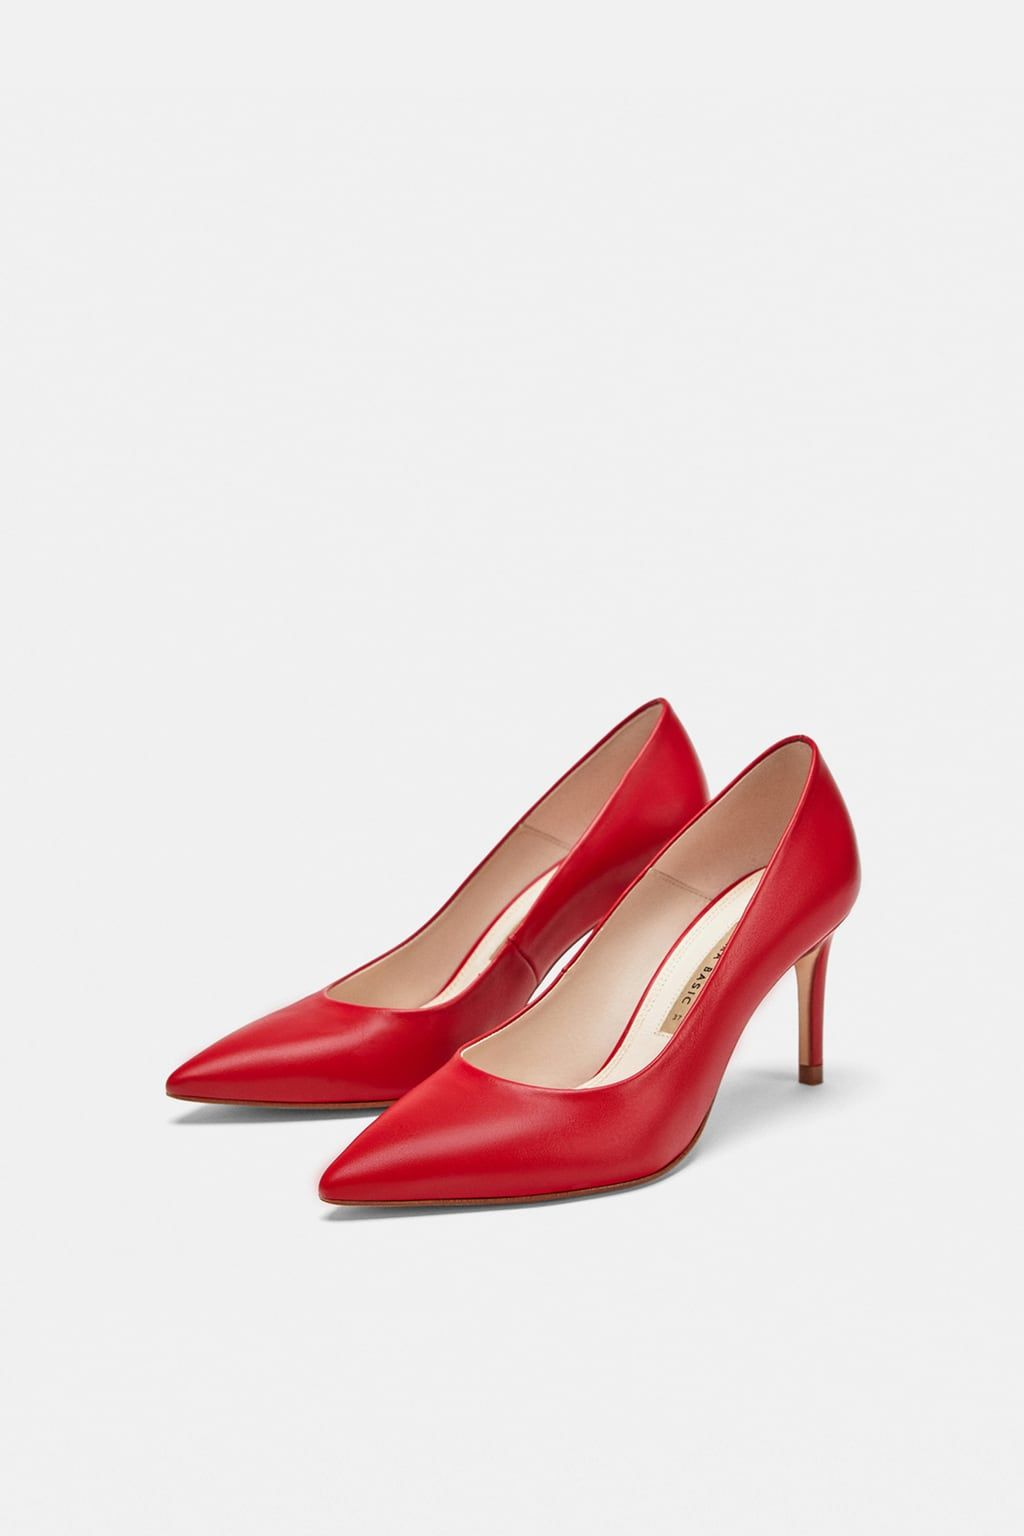 22110e37459 Image 1 of LEATHER HIGH-HEEL COURT SHOES from Zara Red Pumps